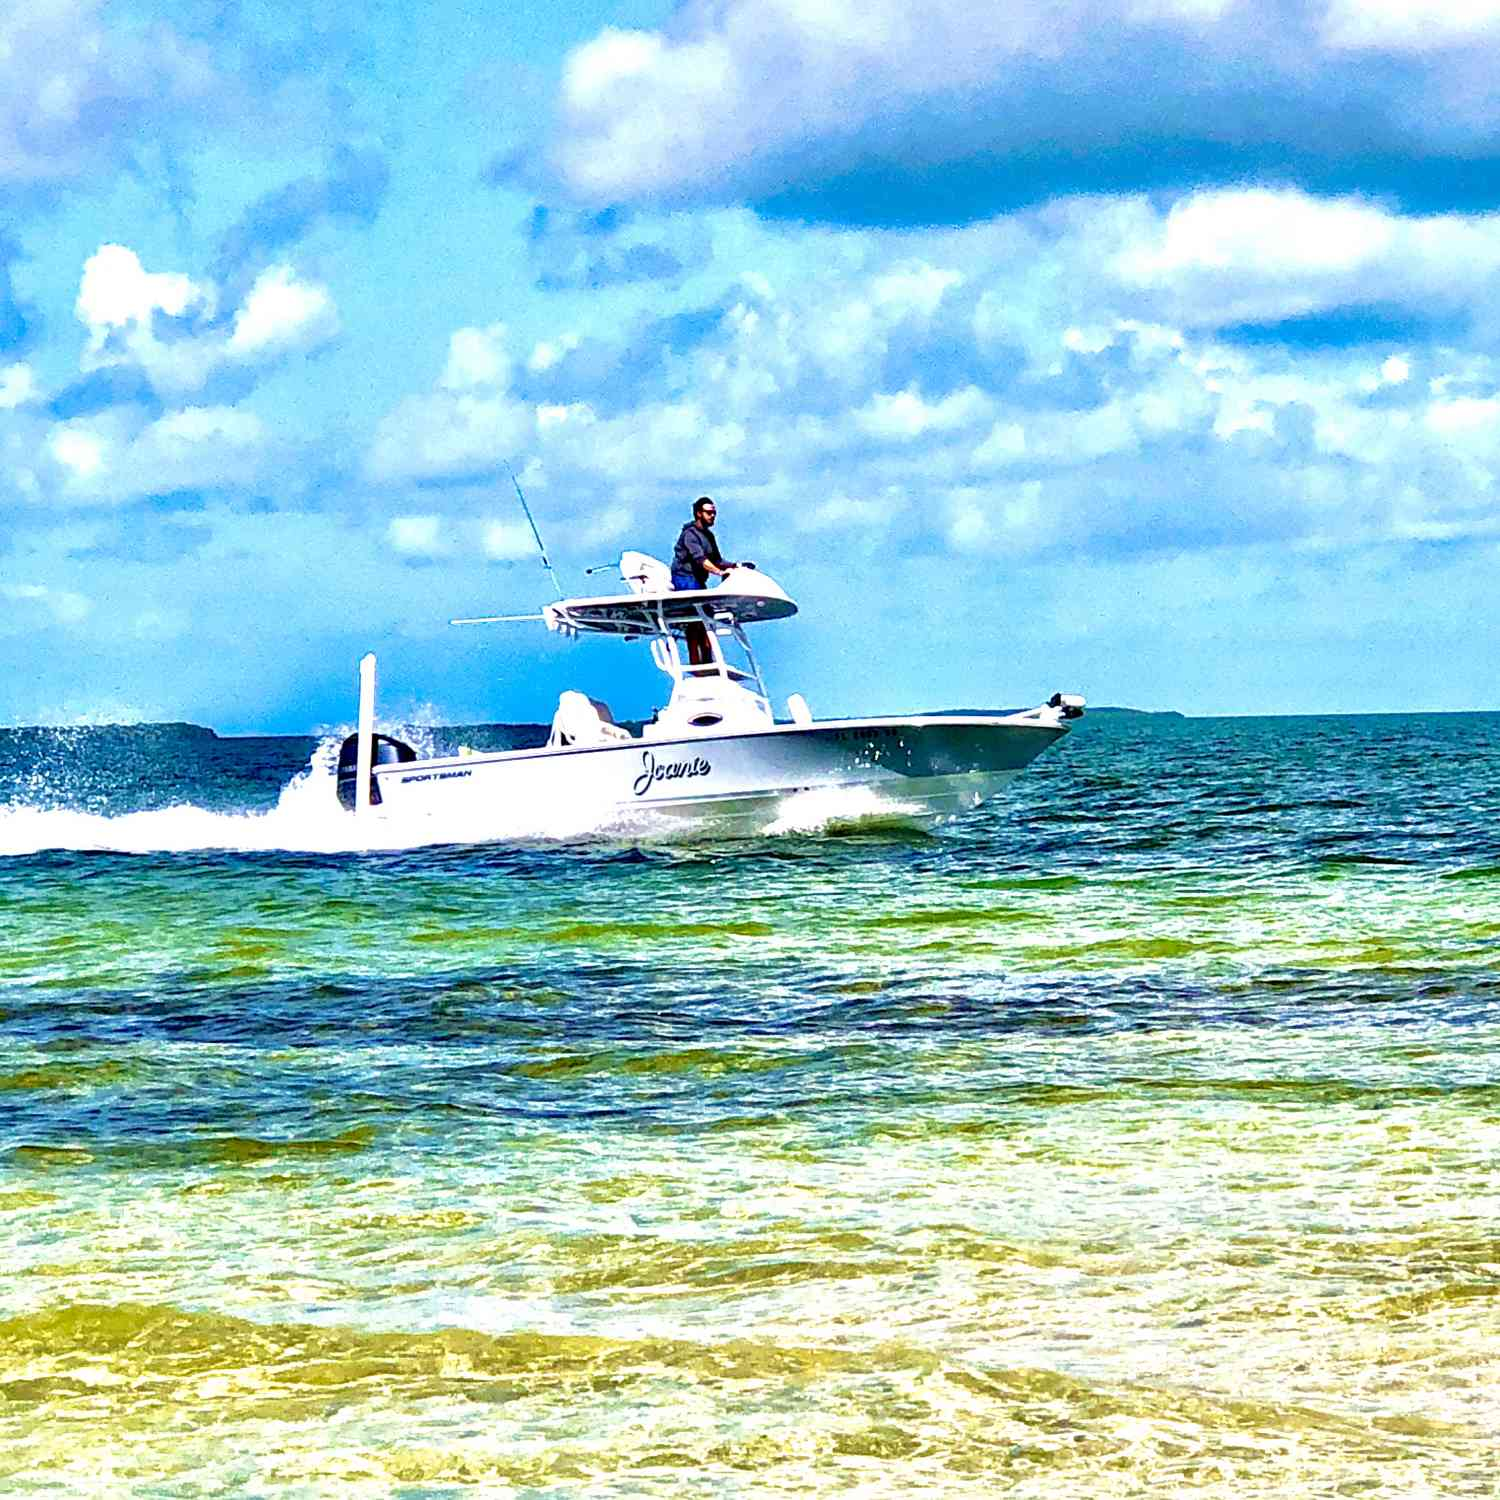 Title: Trying to find my hat! - On board their Sportsman Masters 247 Bay Boat - Location: Key largo, Fl. Participating in the Photo Contest #SportsmanMay2020